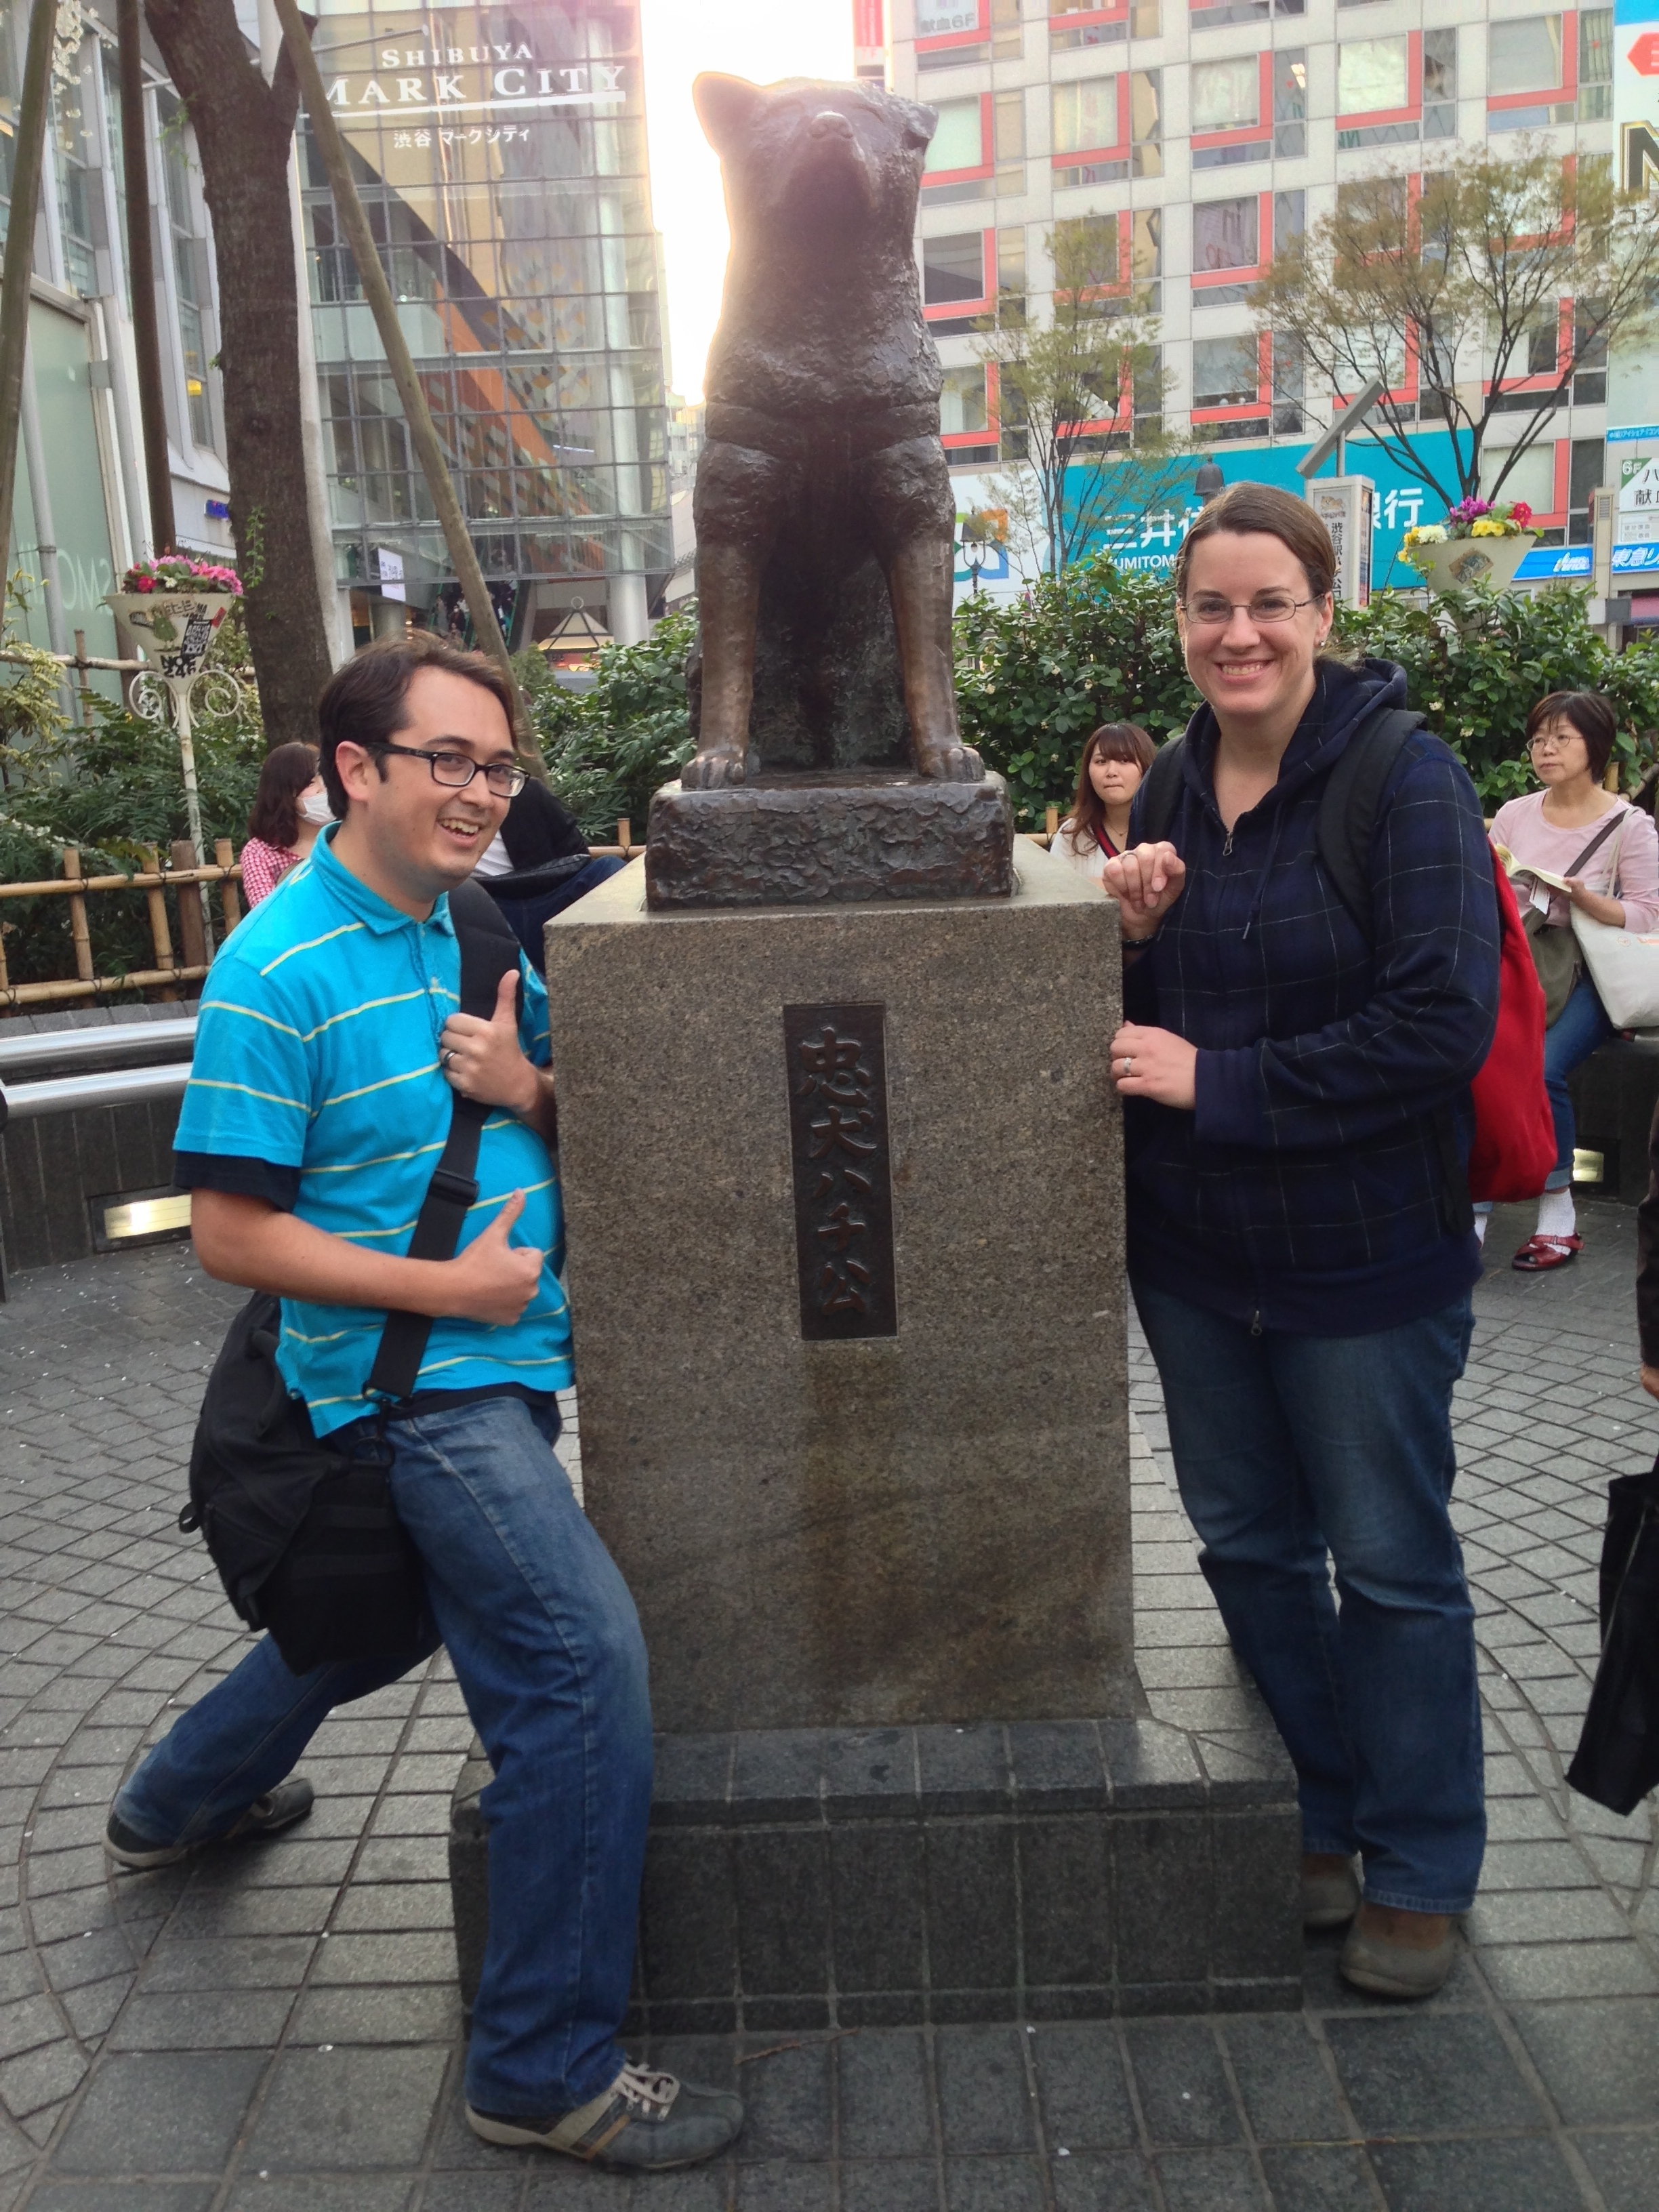 Hachiko waits for his master